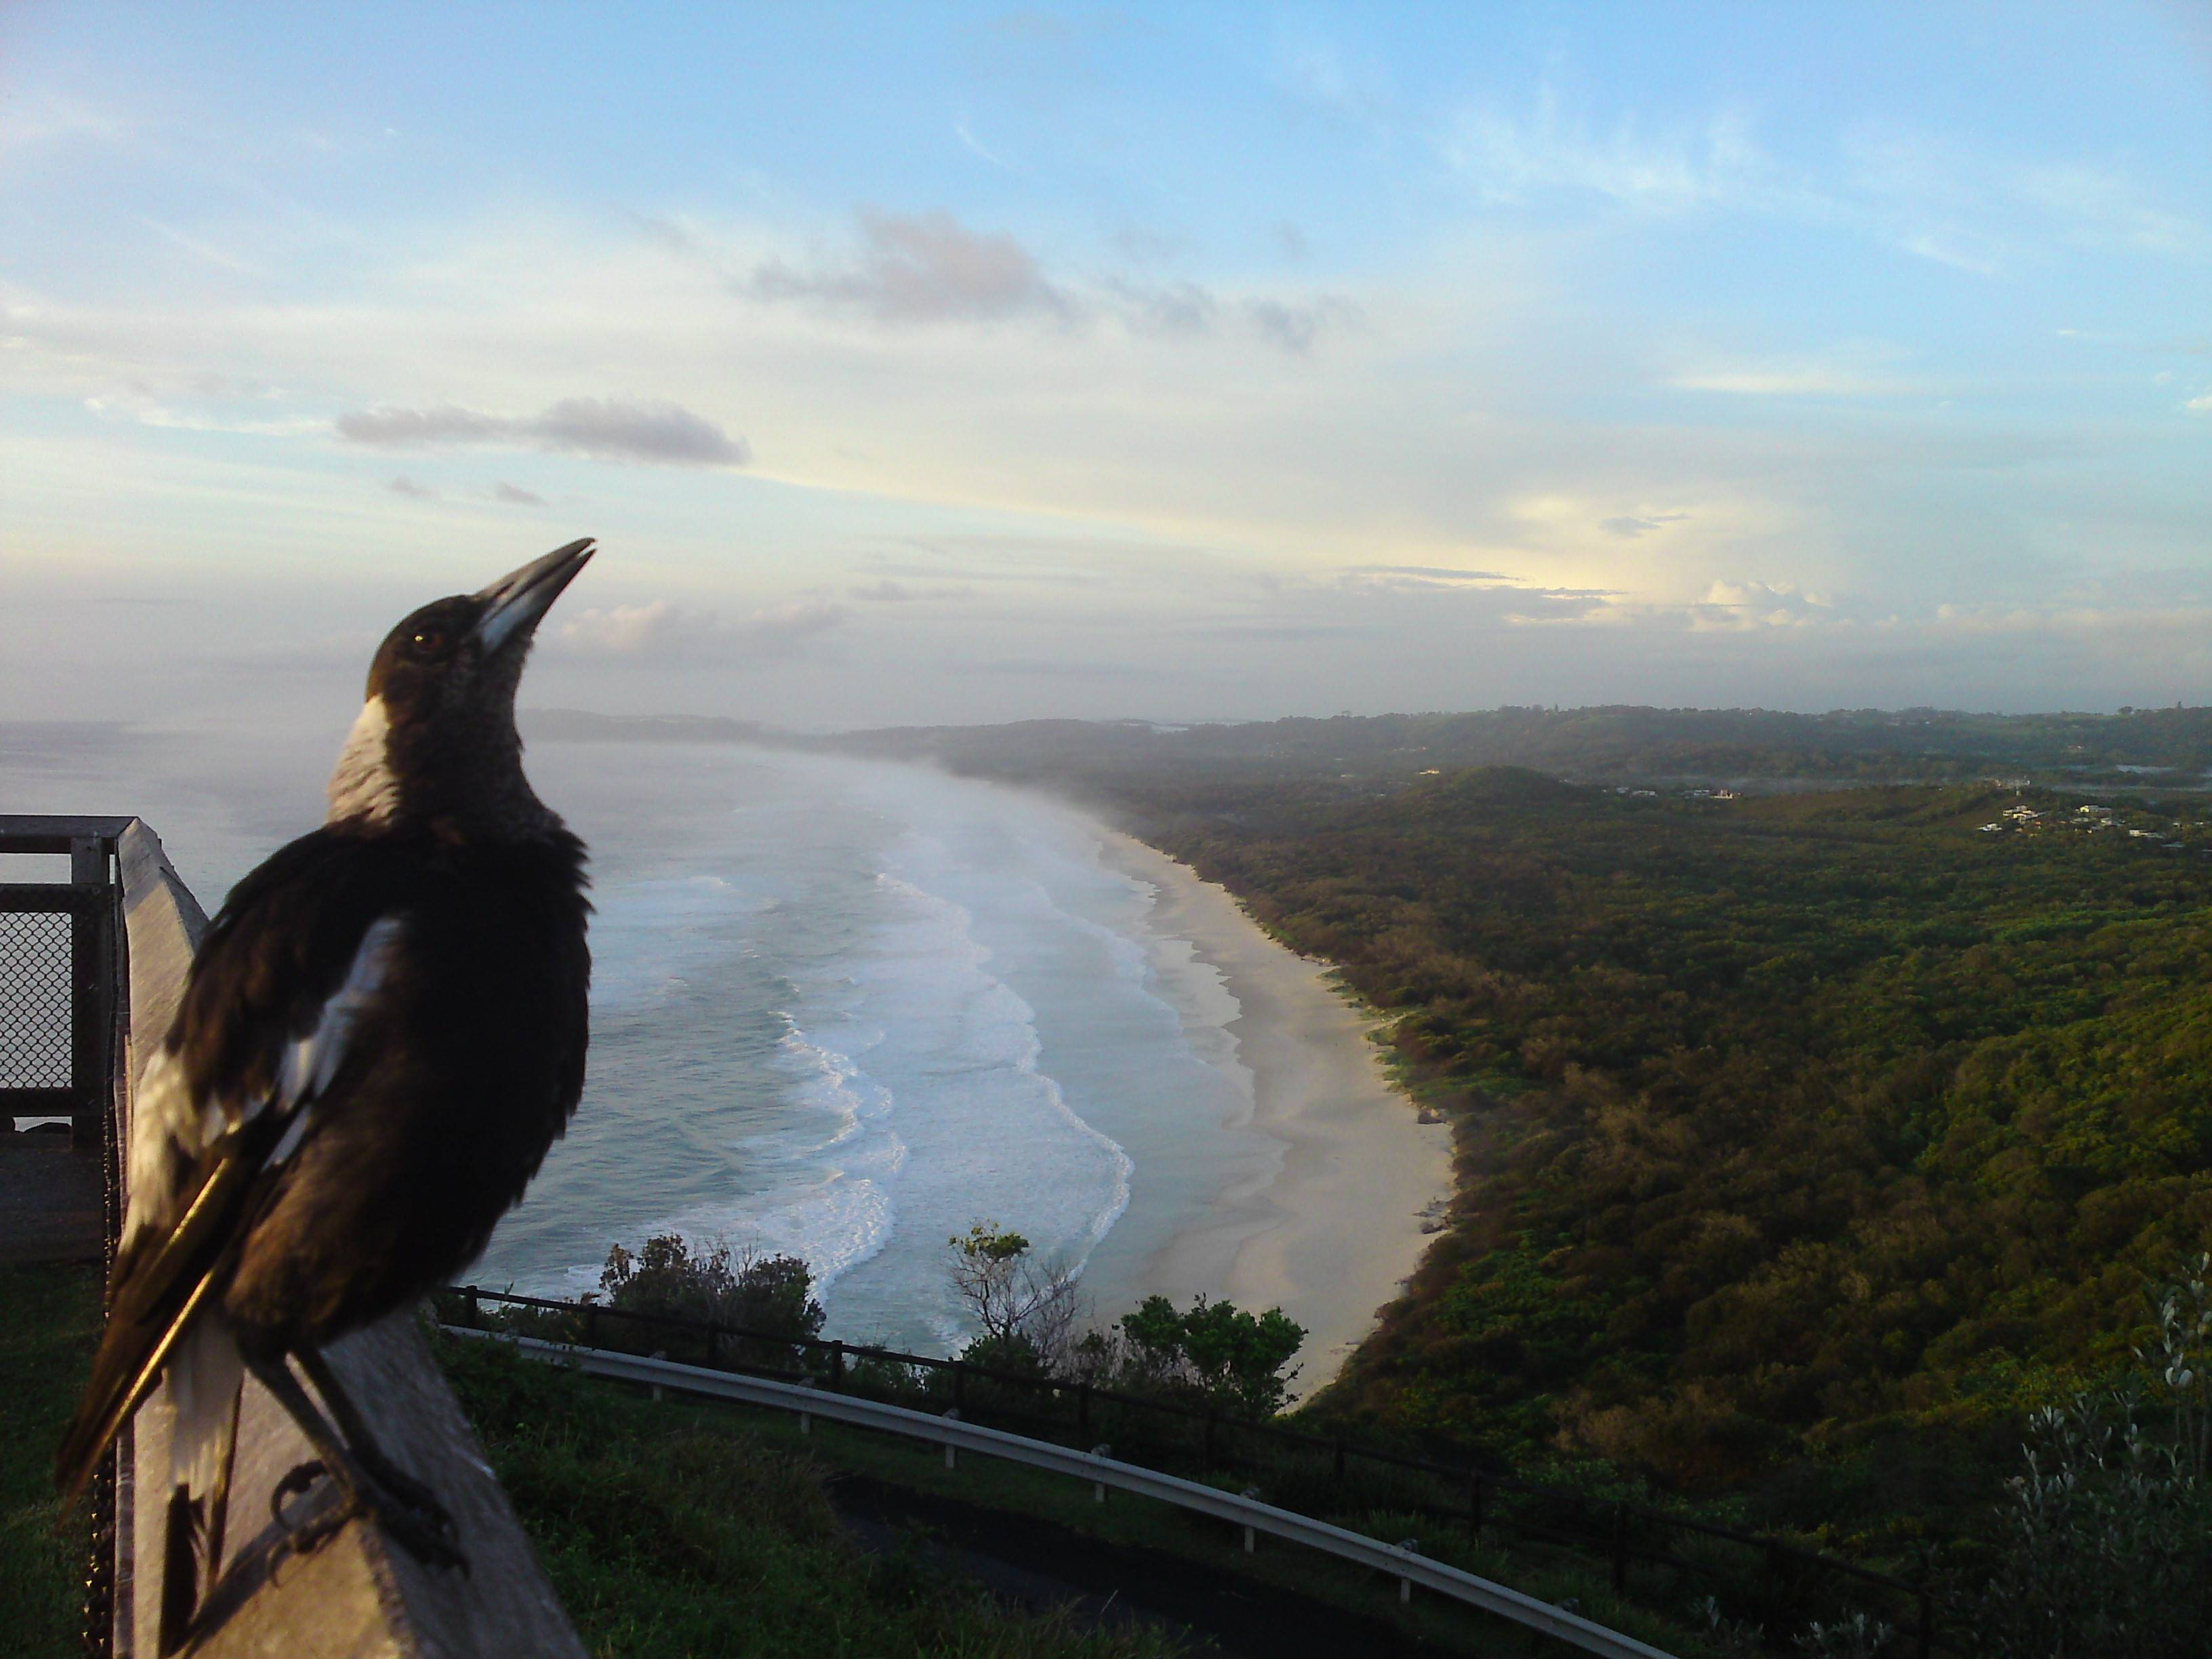 Photo 3: Byron Bay - relax & surf